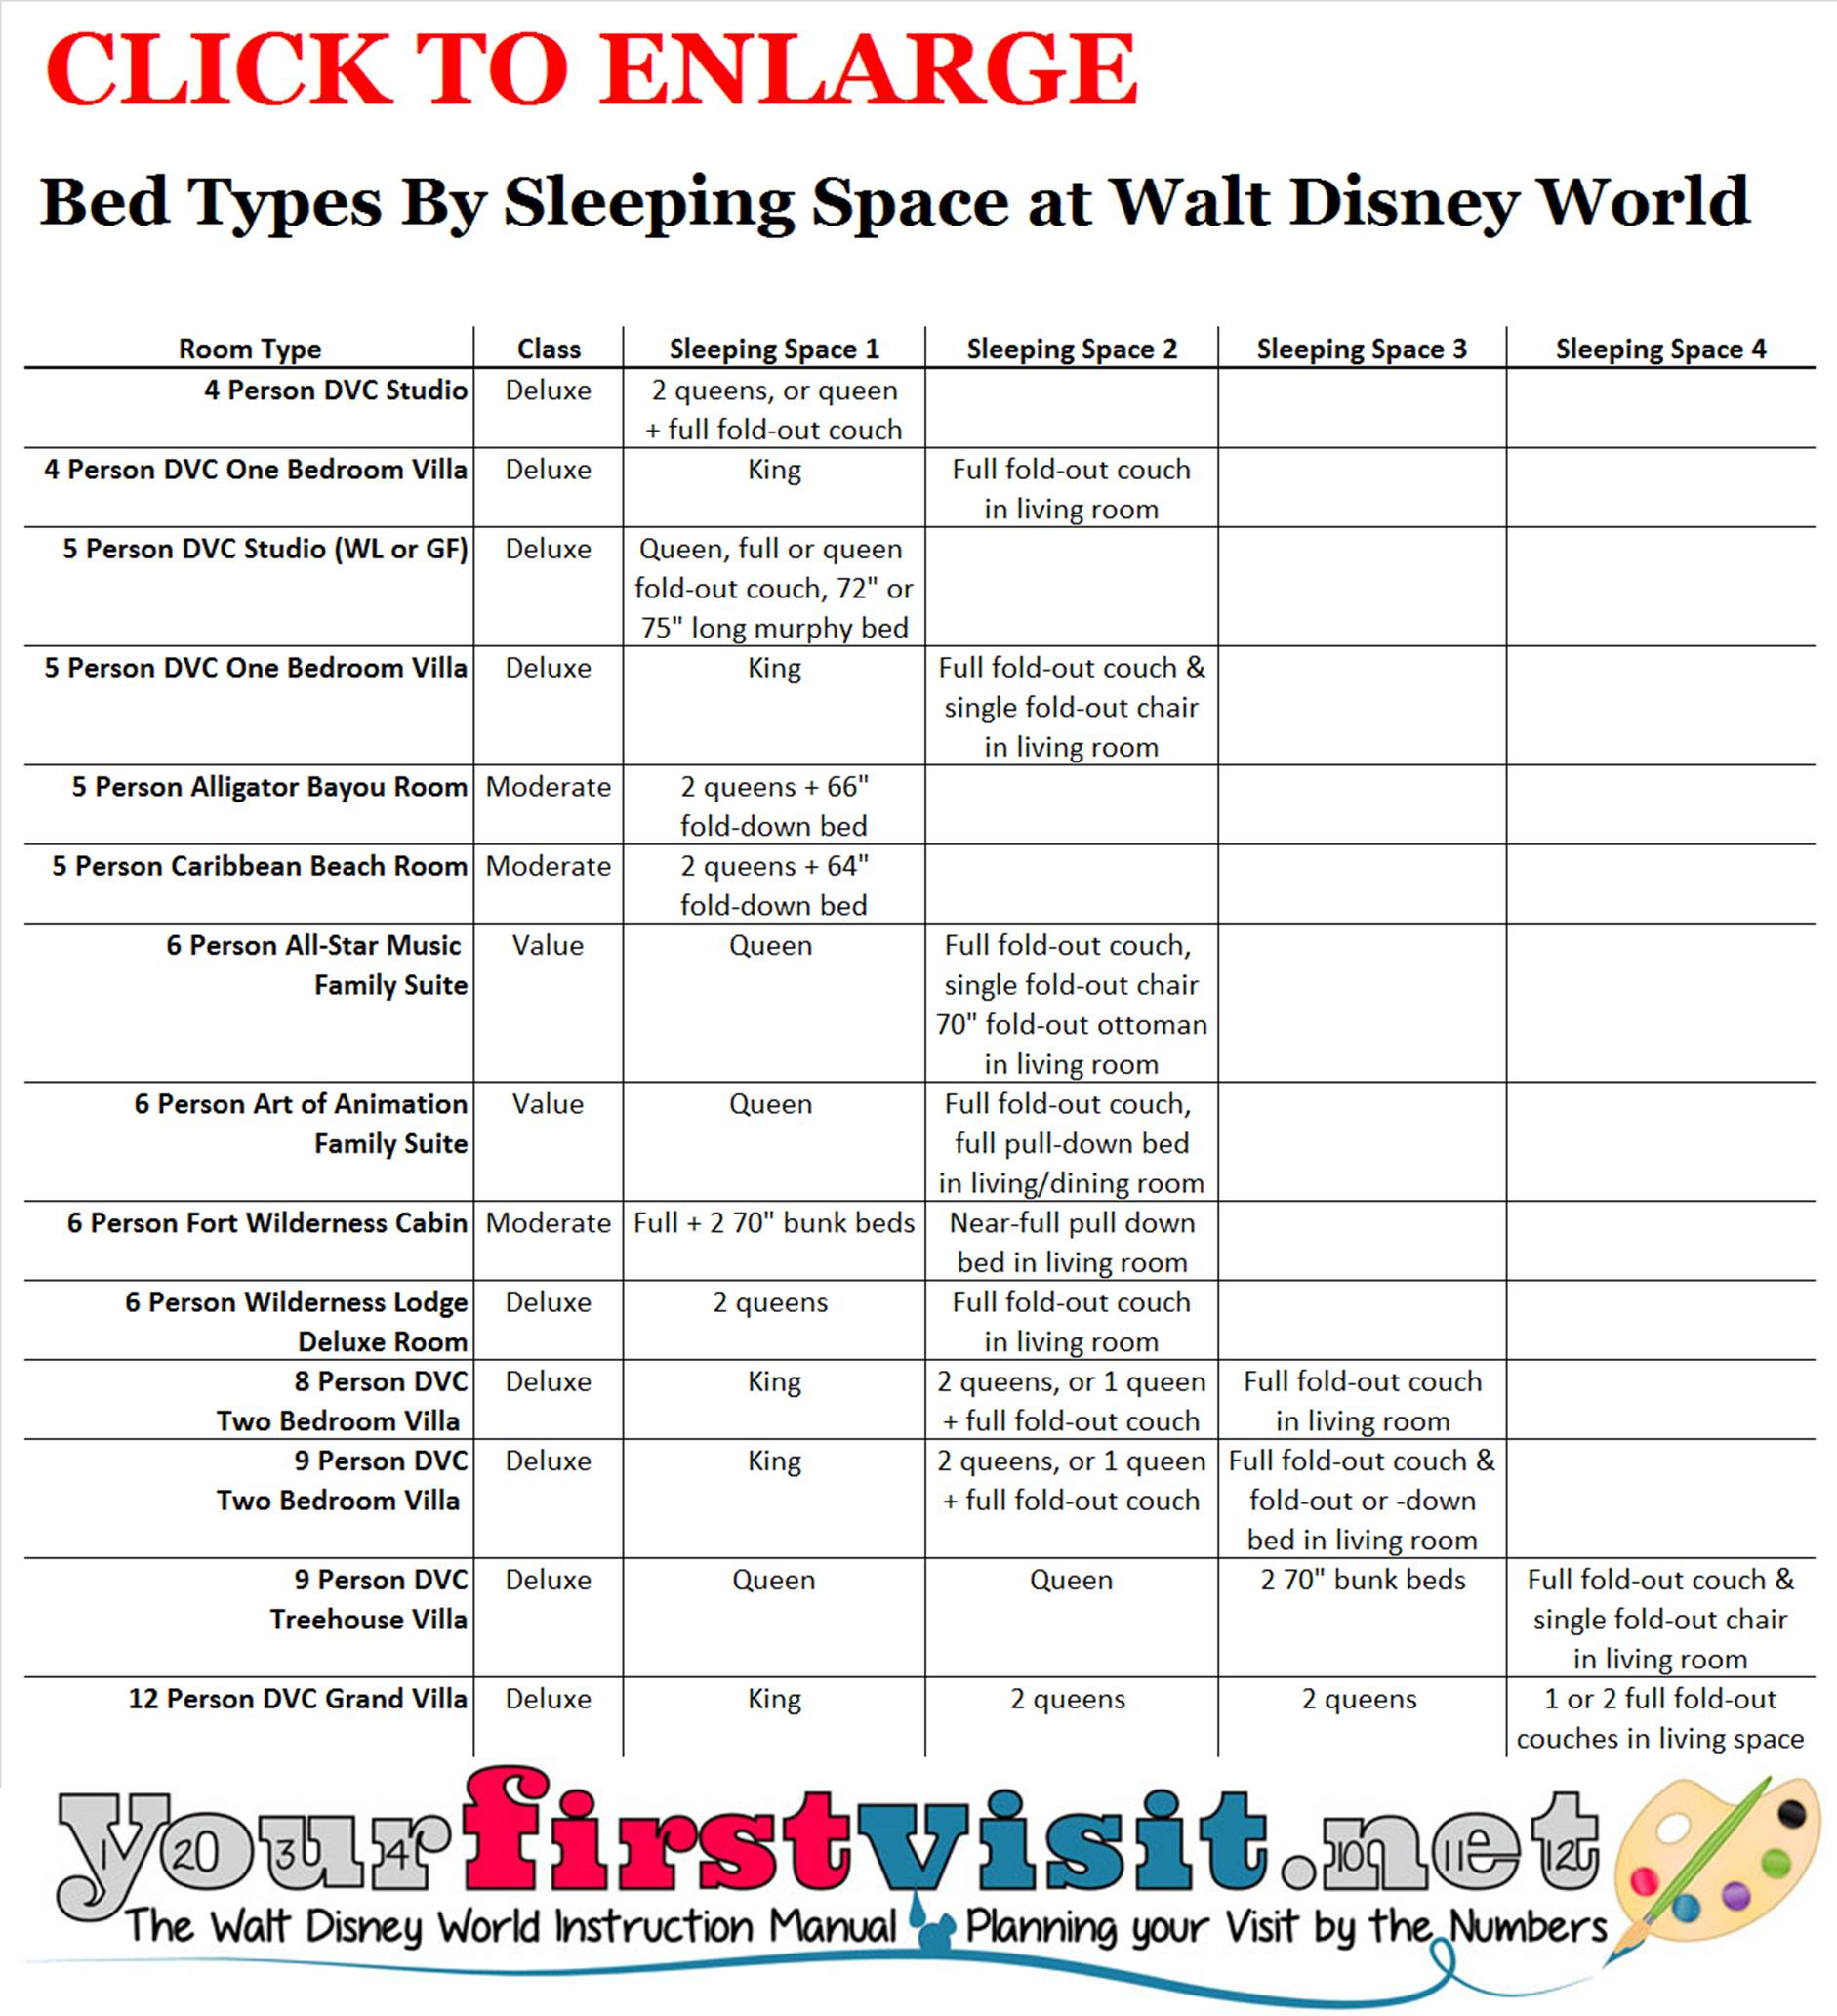 Bed Types by Sleeping Space 10-14 from yourfirstvisit.net